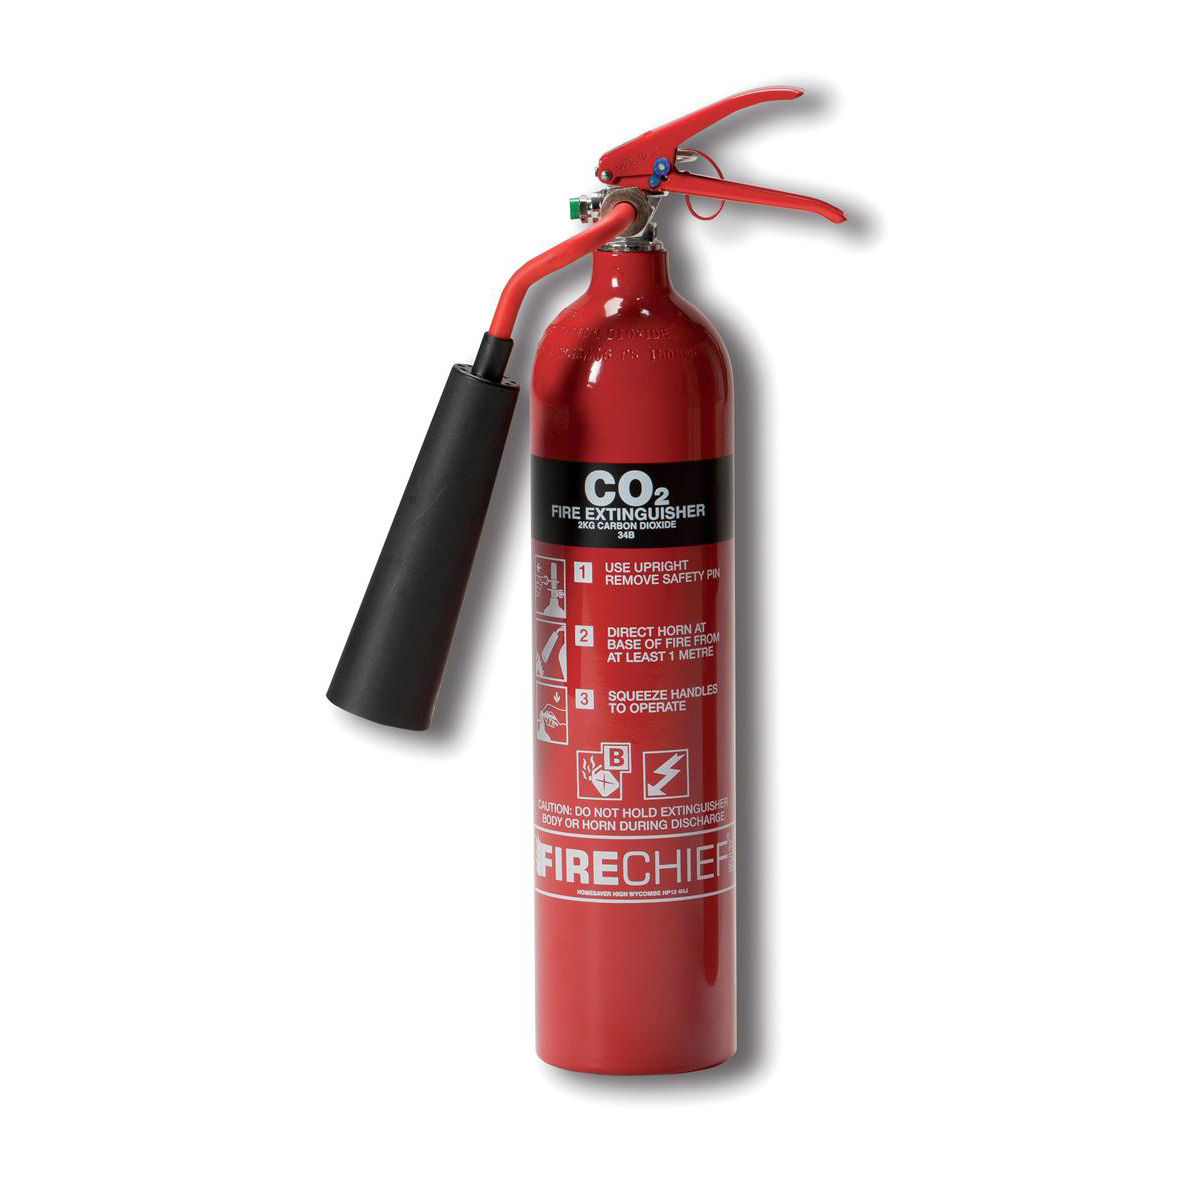 Fire extinguishers Firechief 2.0KG CO2 Fire Extinguisher for Class A B and E Fires Ref WG10128